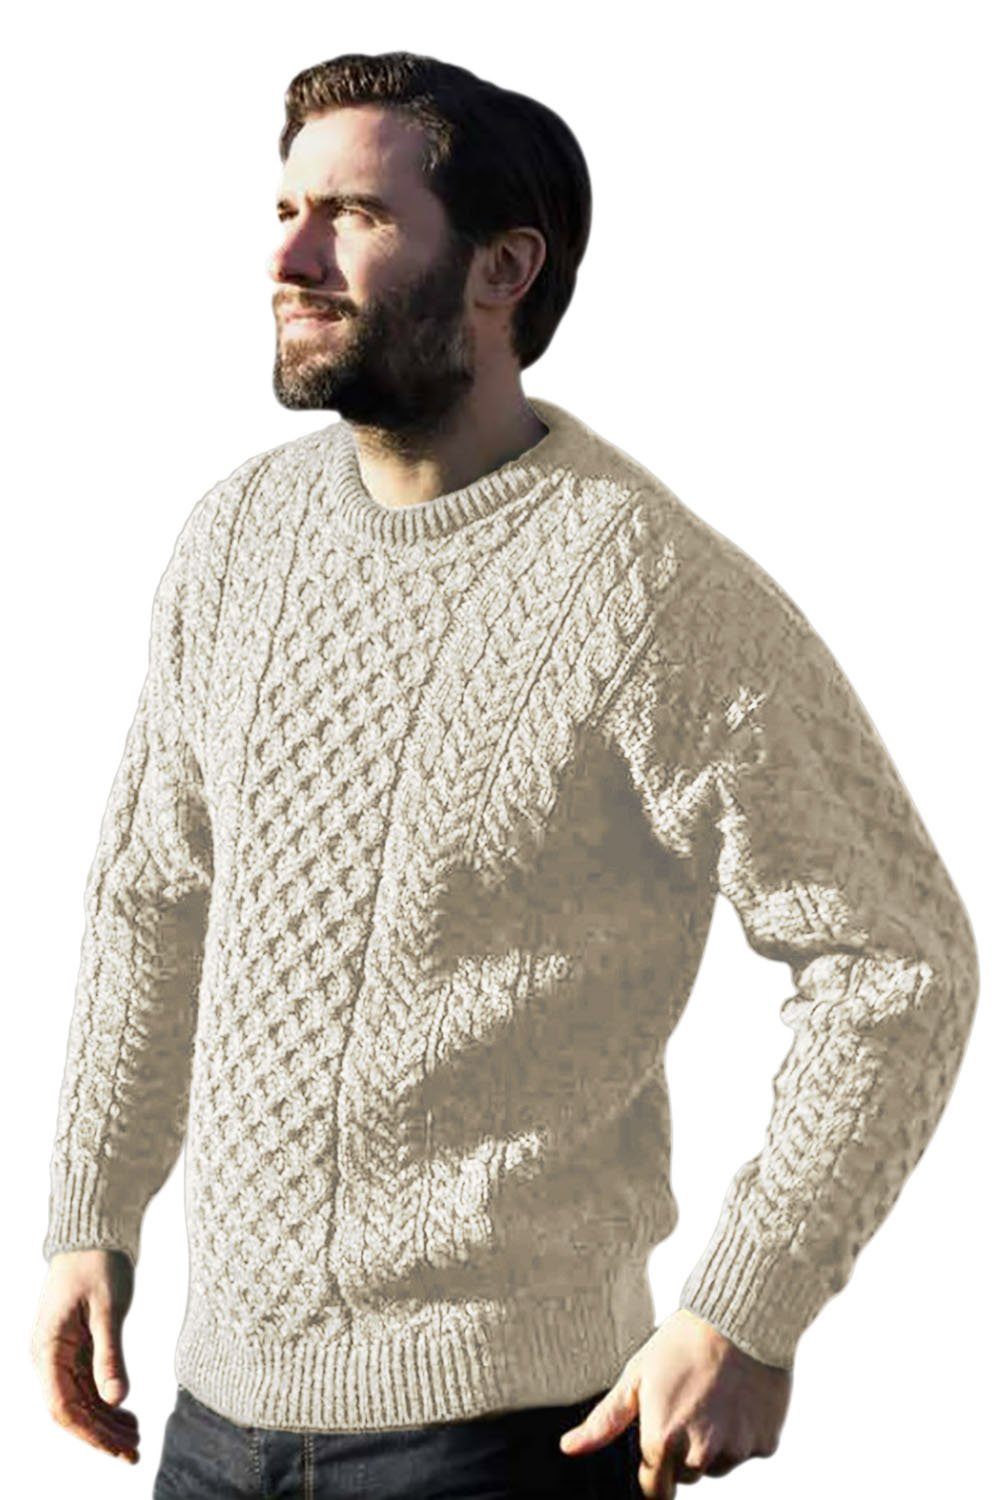 Fisherman Knit Sweater Pattern - Design Patterns